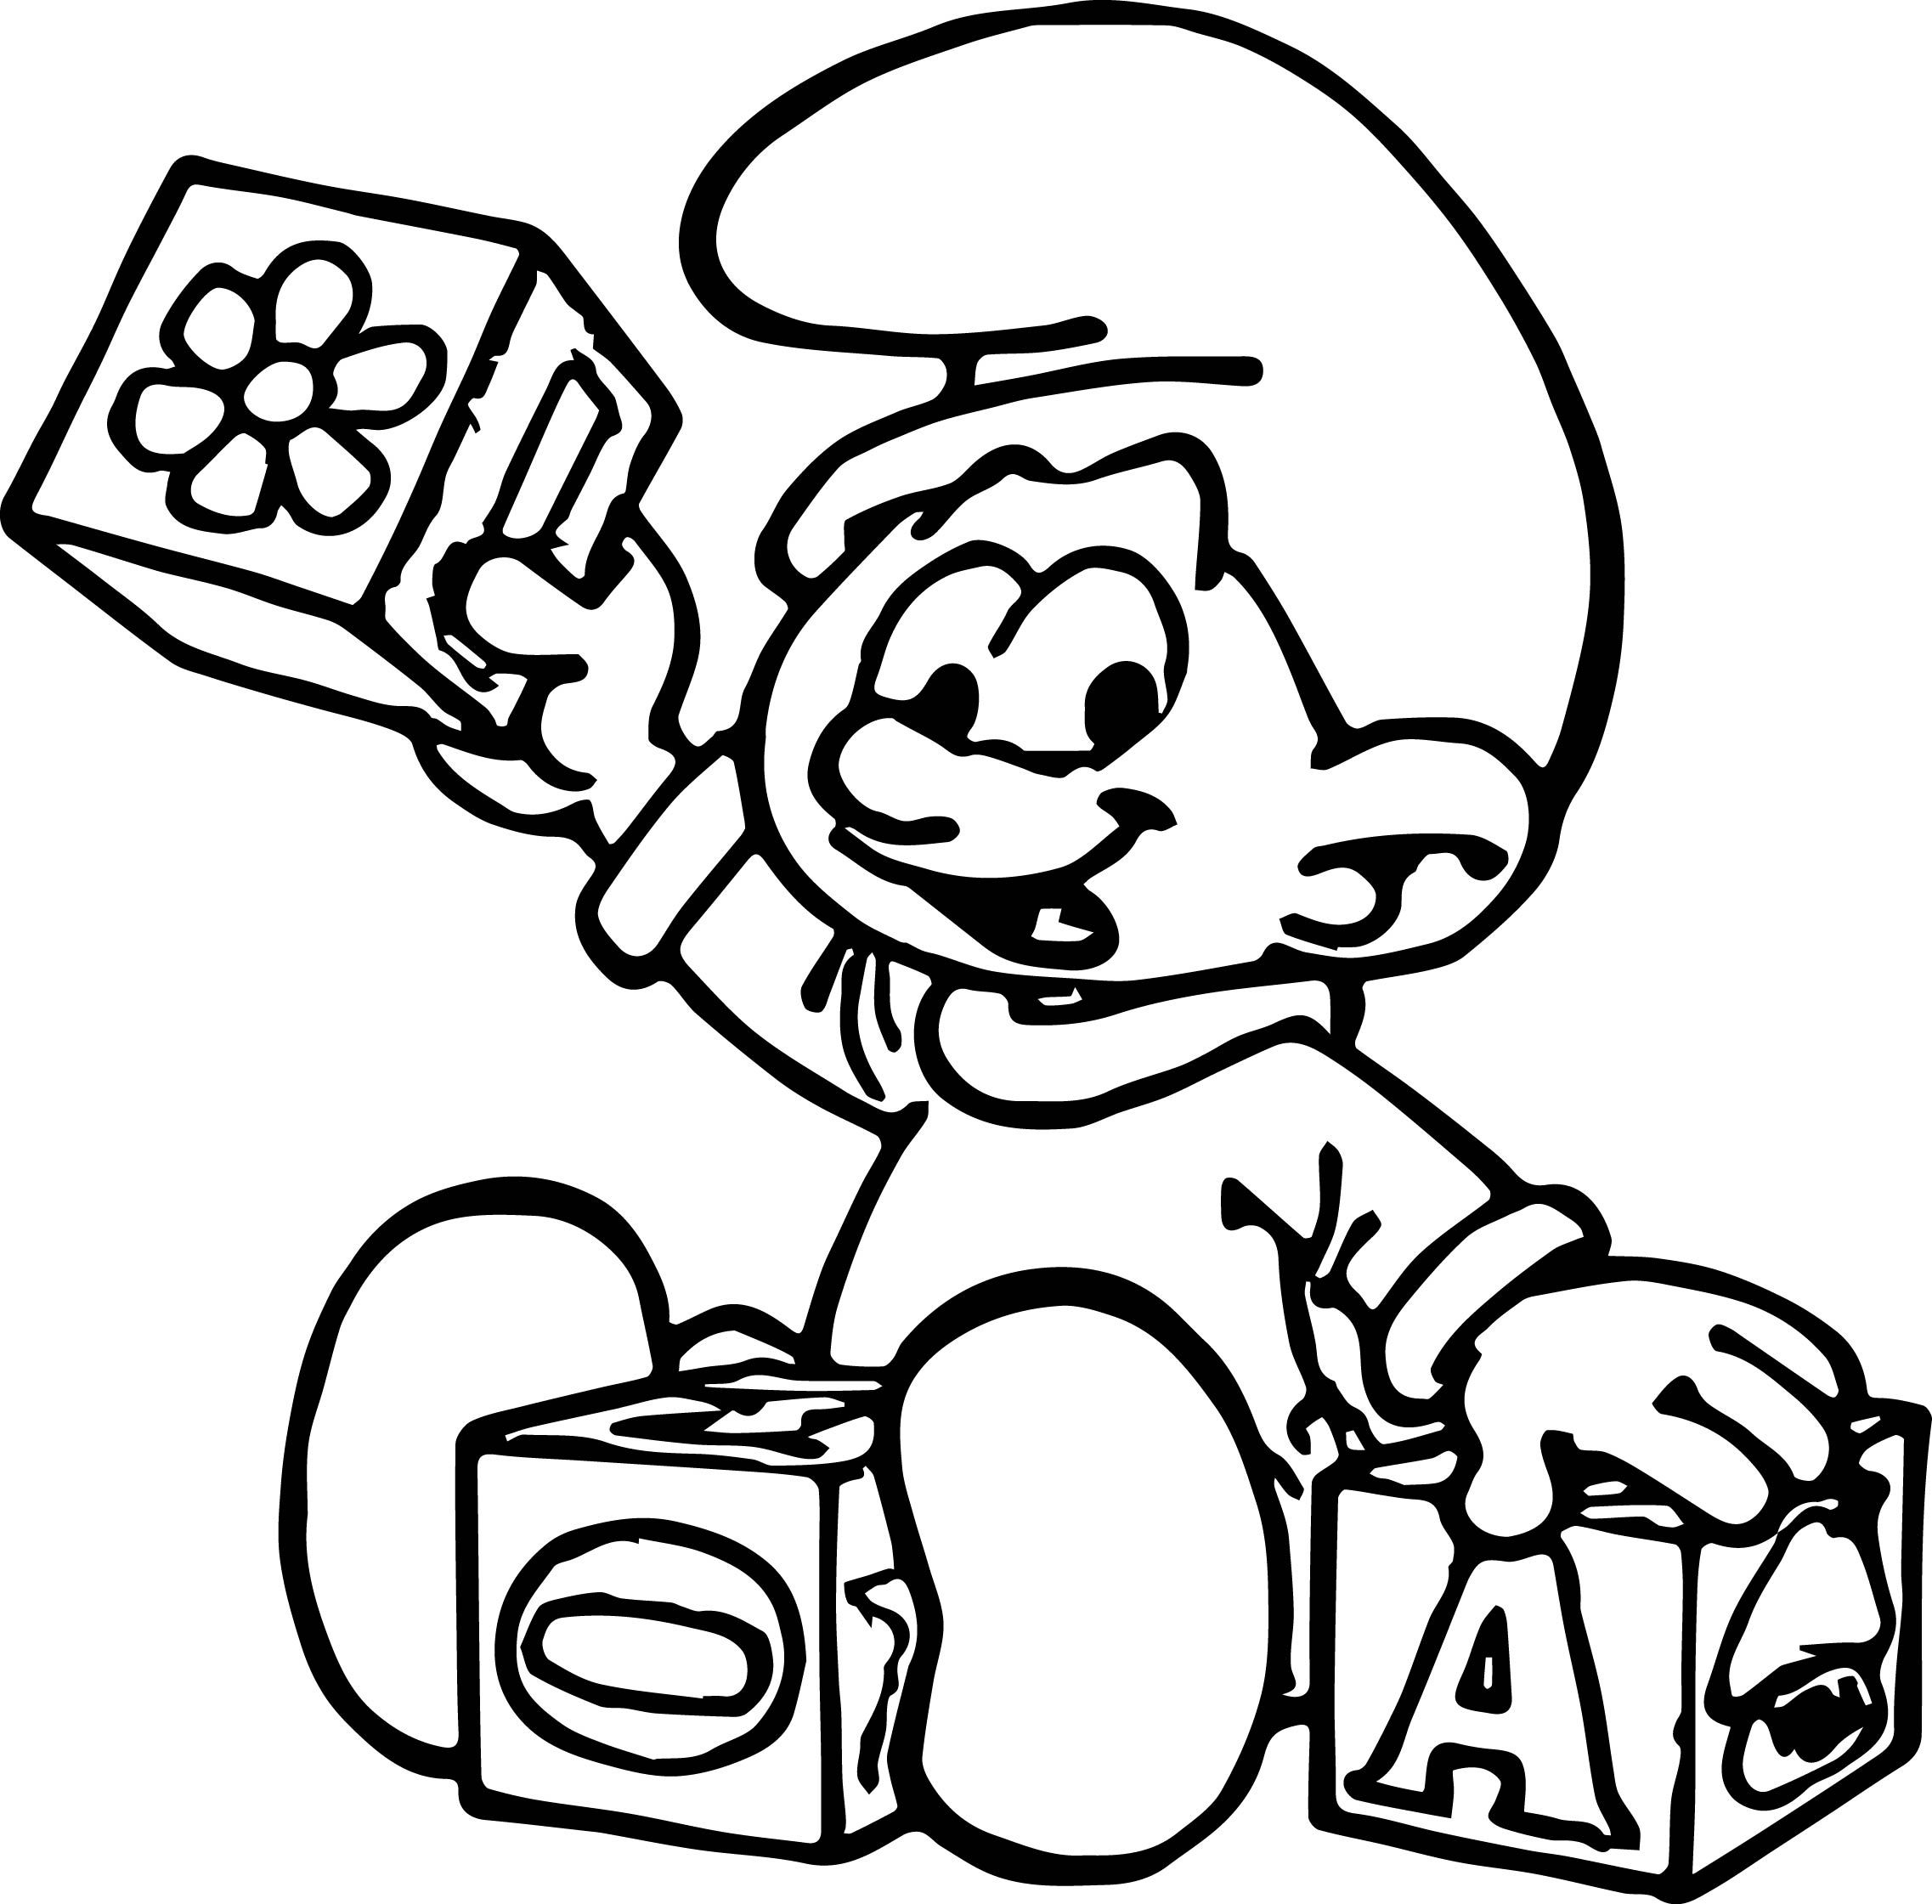 Cool Baby Smurf Playing Toy Coloring Page Printable Coloring Book Printable Coloring Pages Coloring Pages